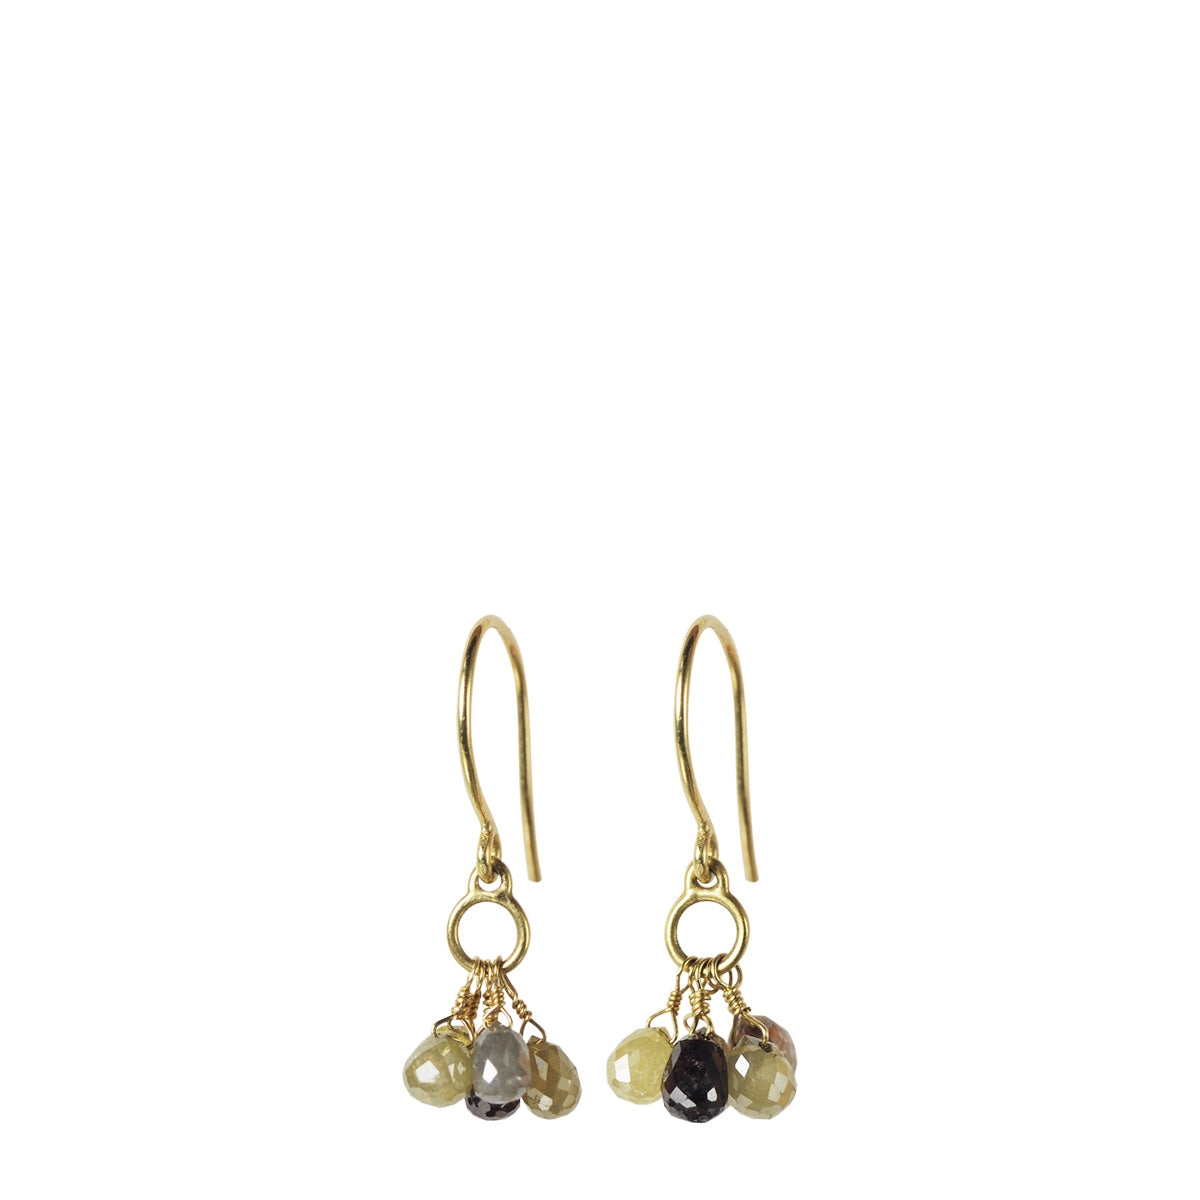 18K Gold Small Circle Drop Earrings with 5 Opaque Diamond Briolettes